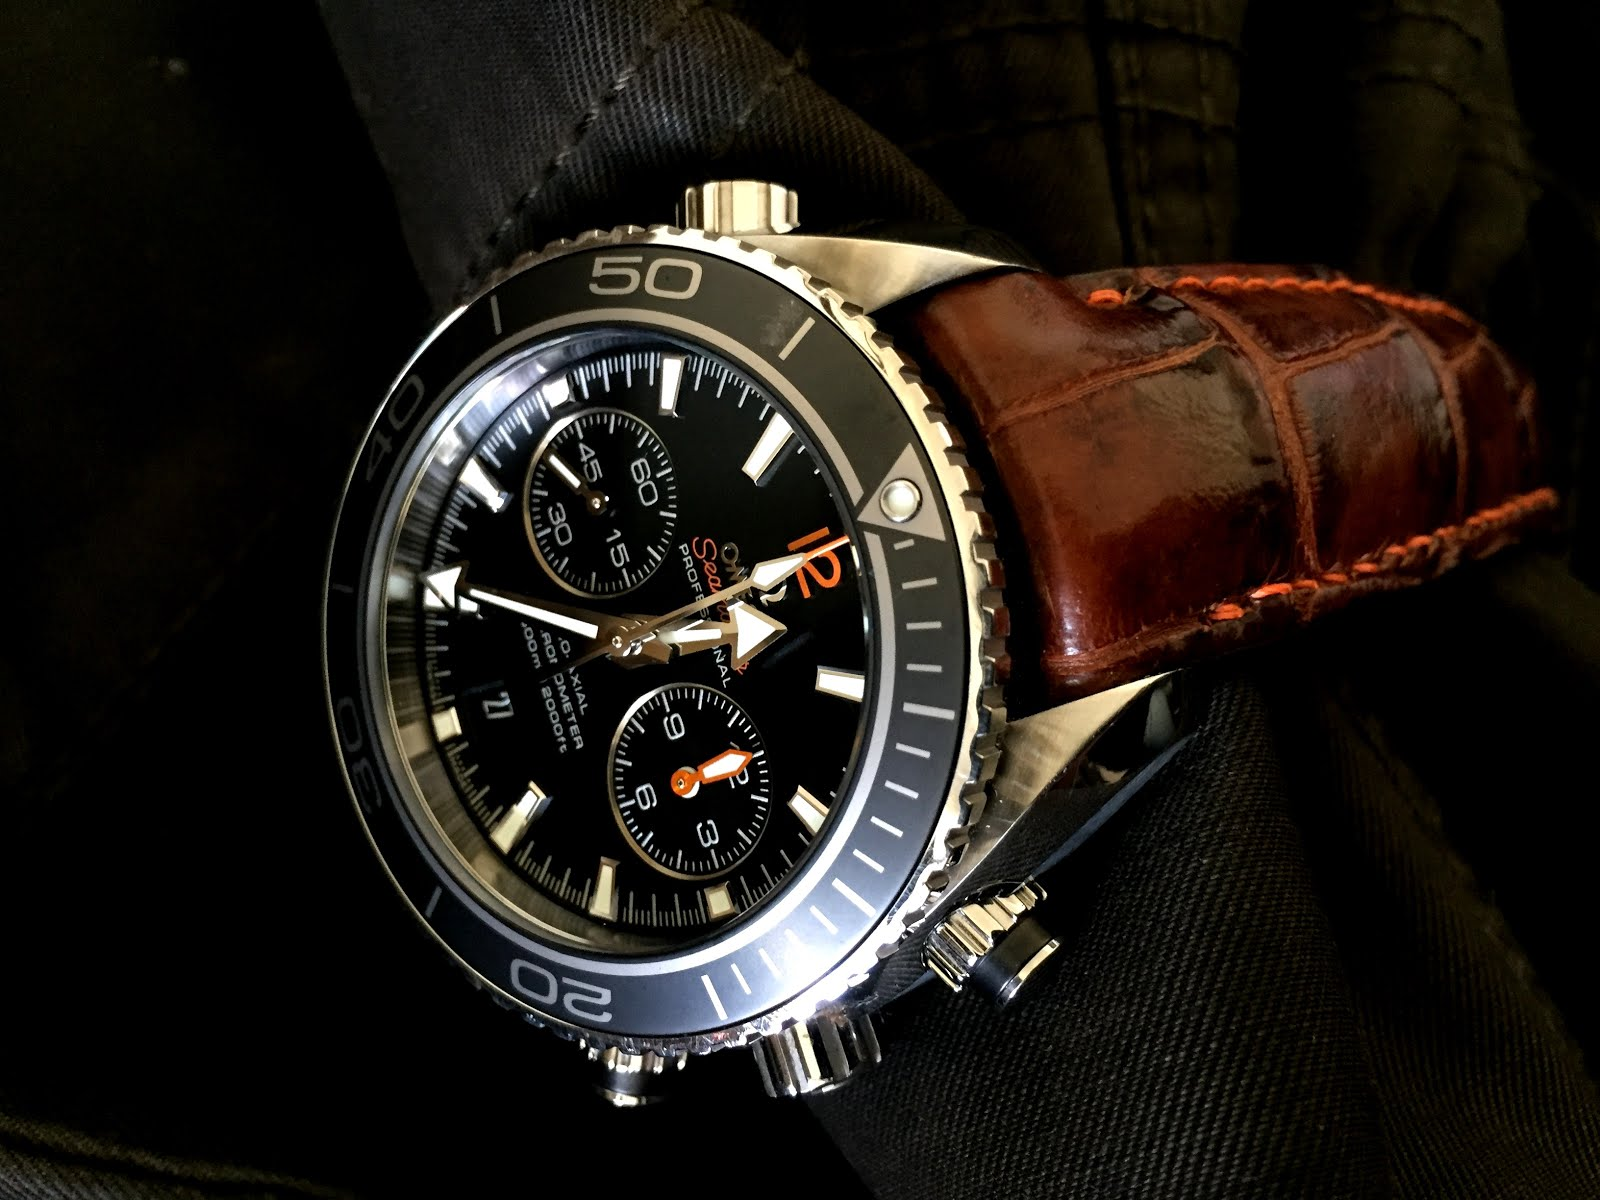 Daniel's great looking Omega Planet Ocean Chronograph on Caramel Brulee Alligator strap